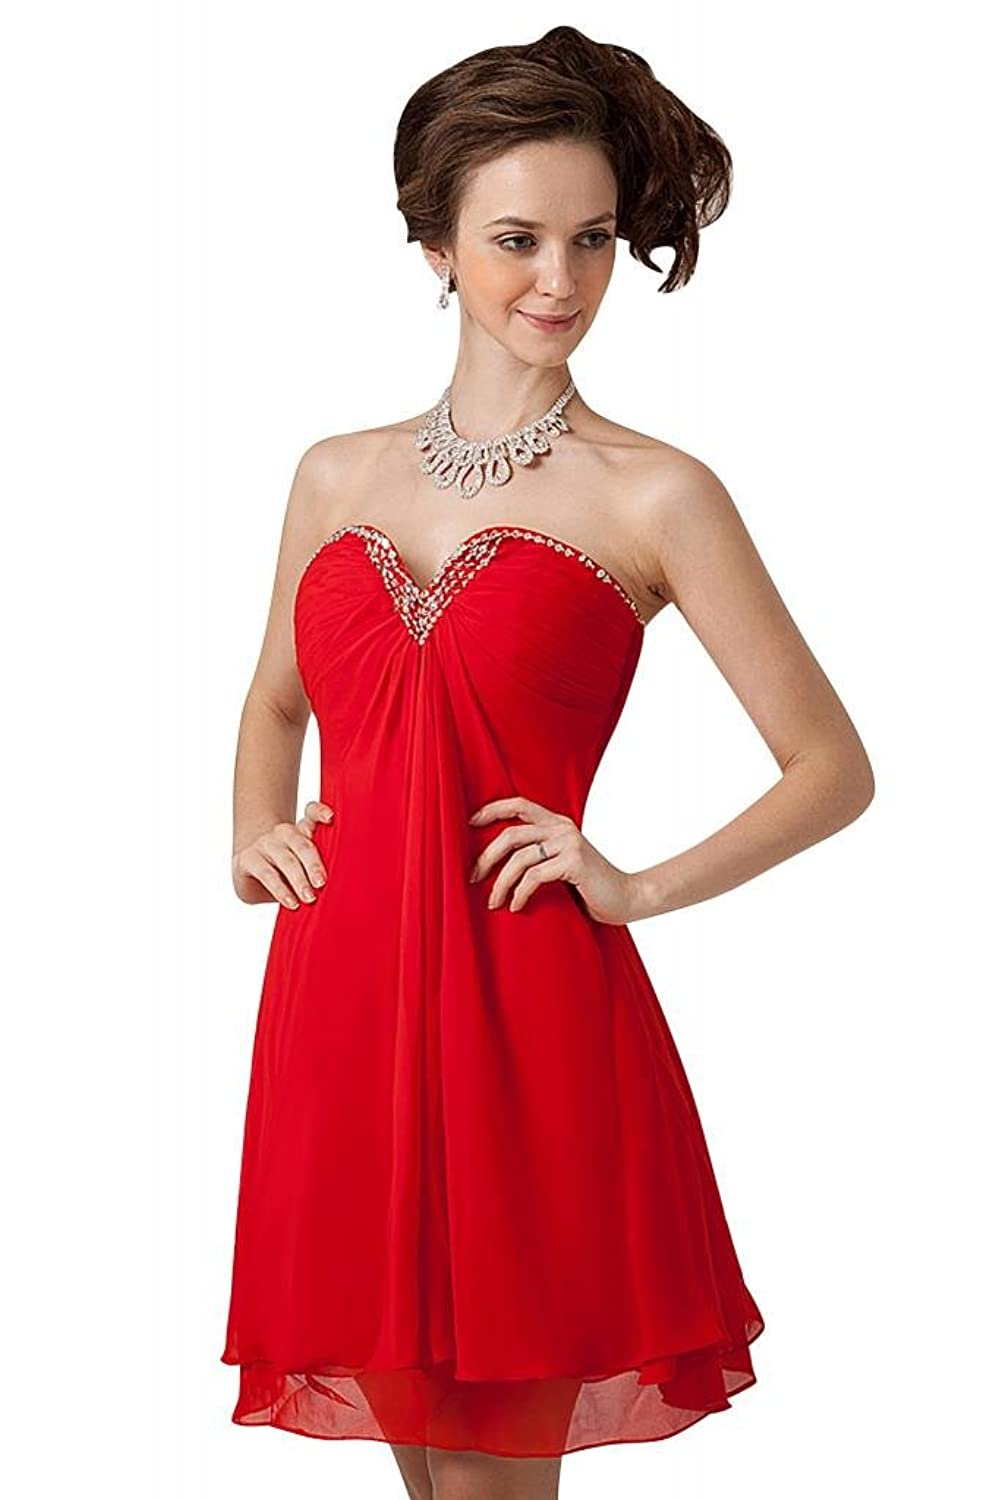 GEORGE BRIDE Red Short Chiffon Party/Evening Dress